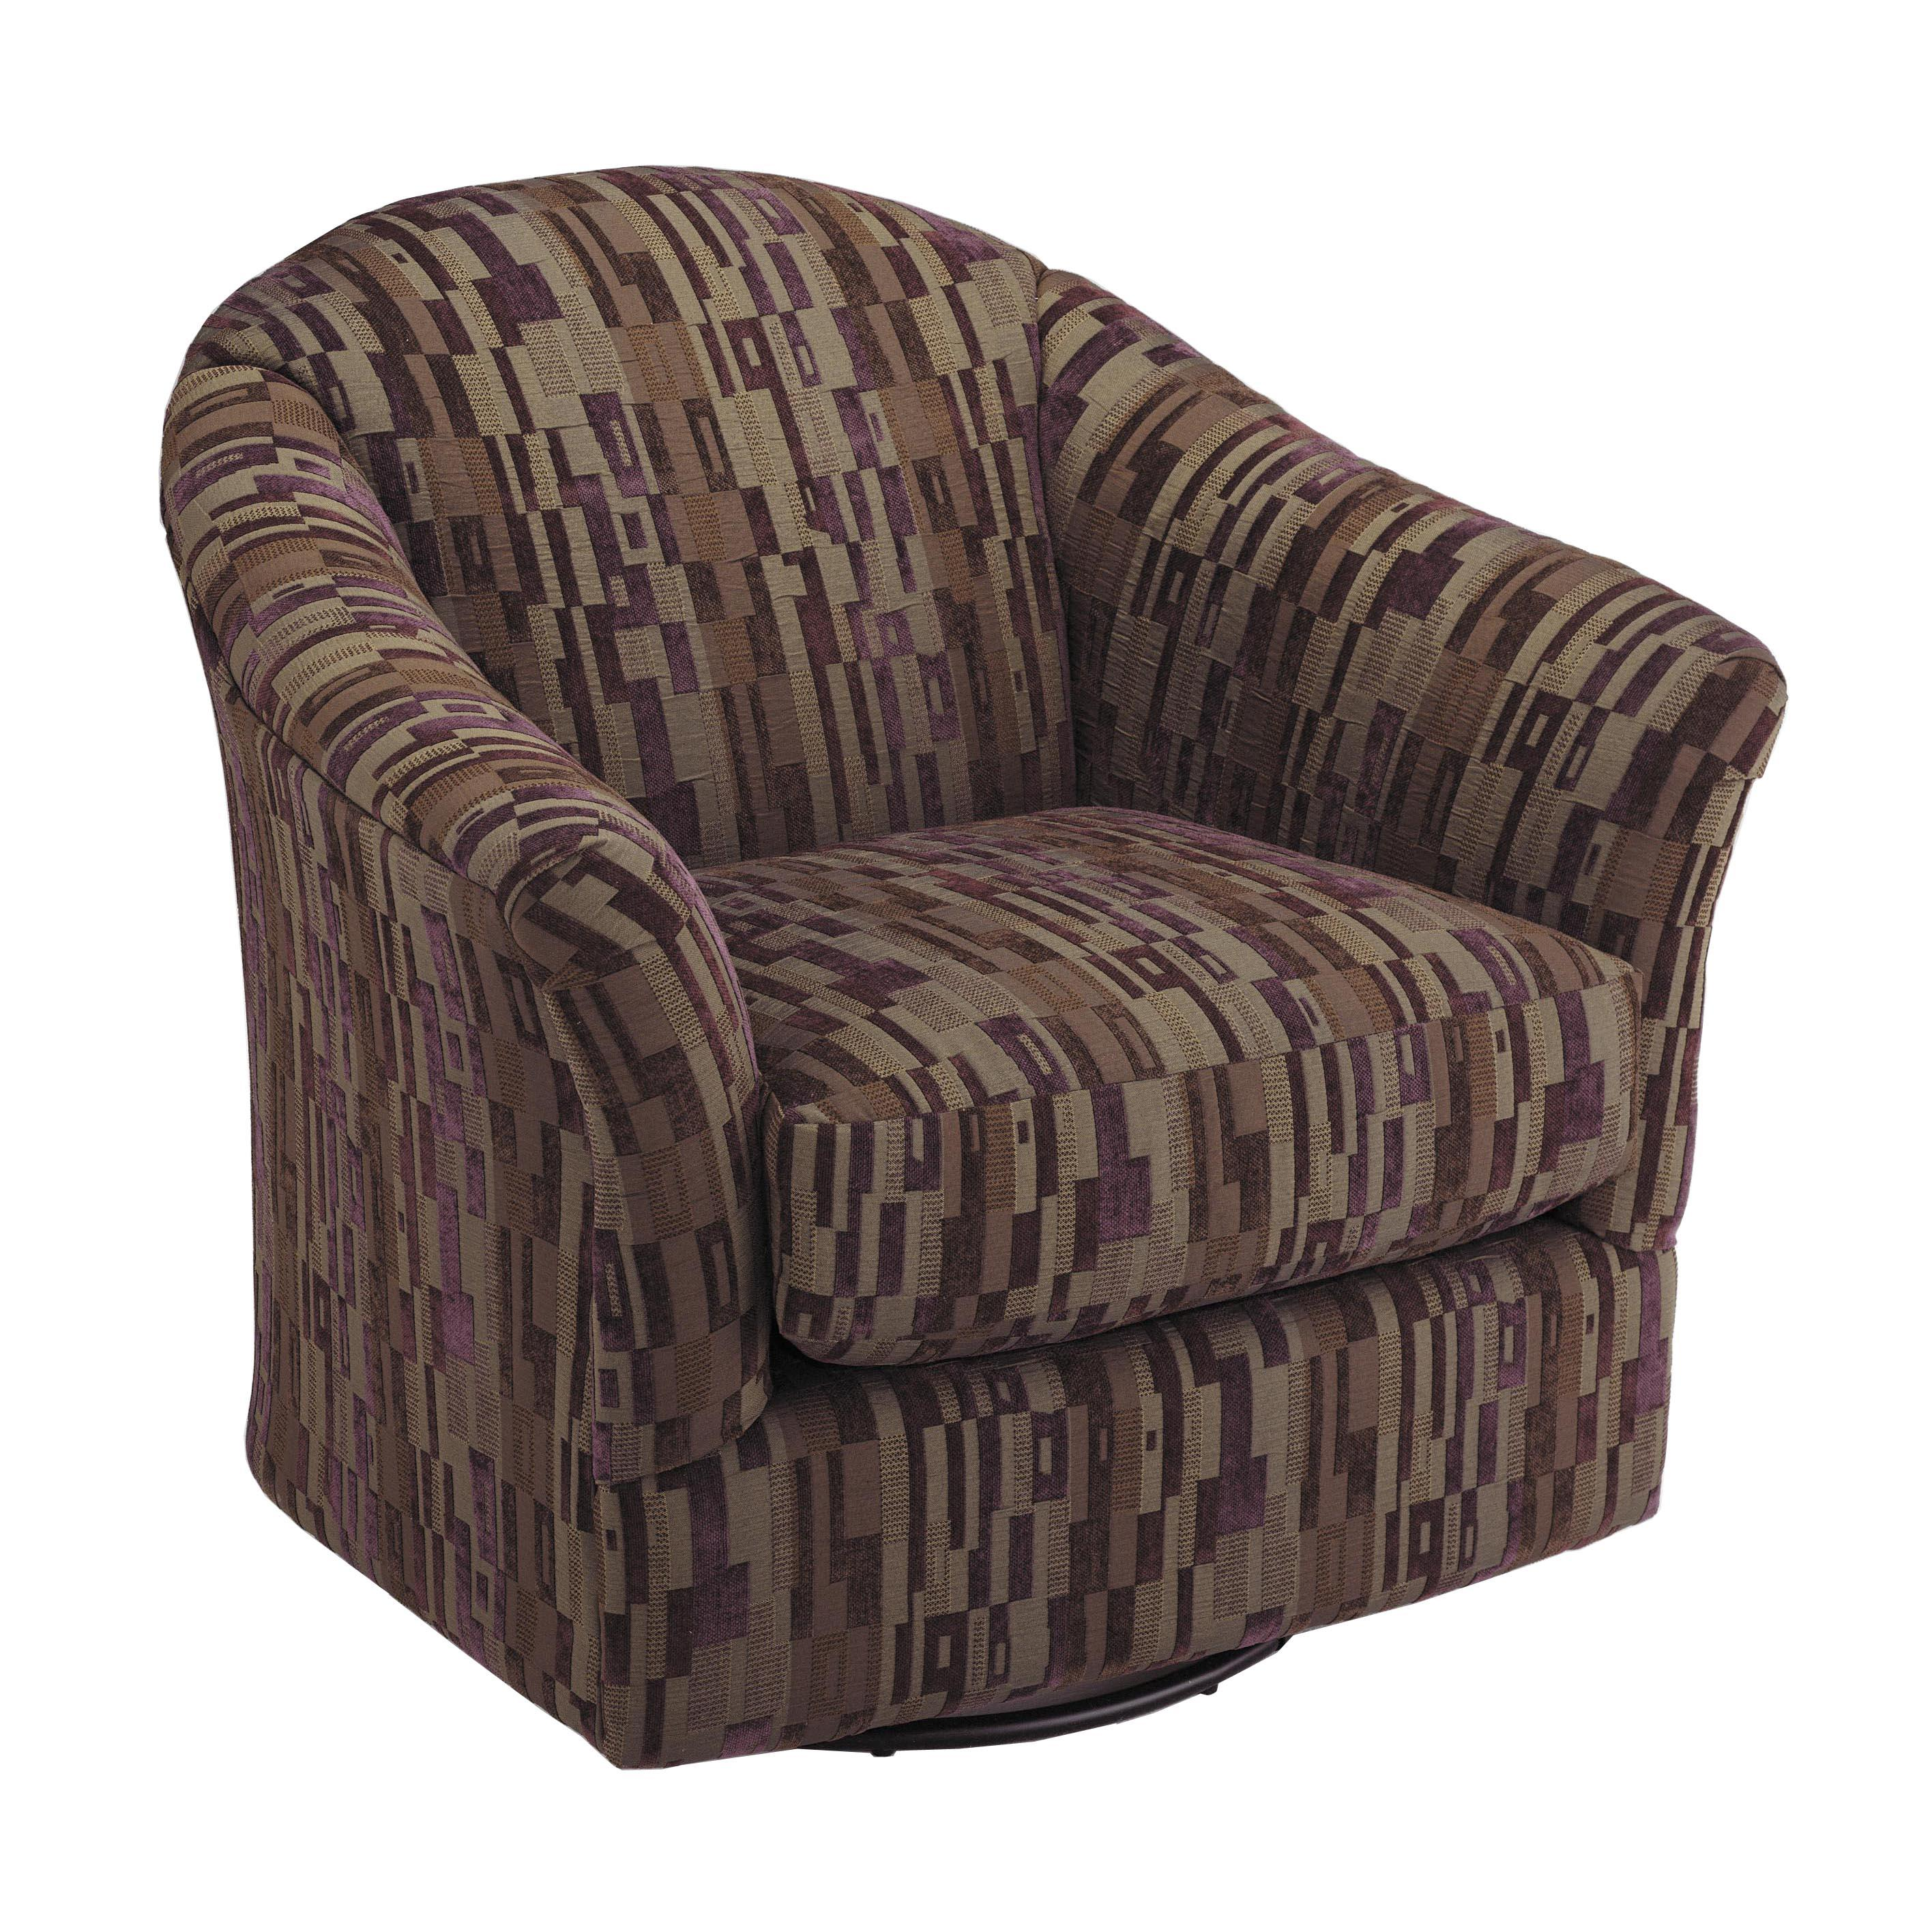 Vendor 411 Chairs Swivel Glide Darby Swivel Glider Chair